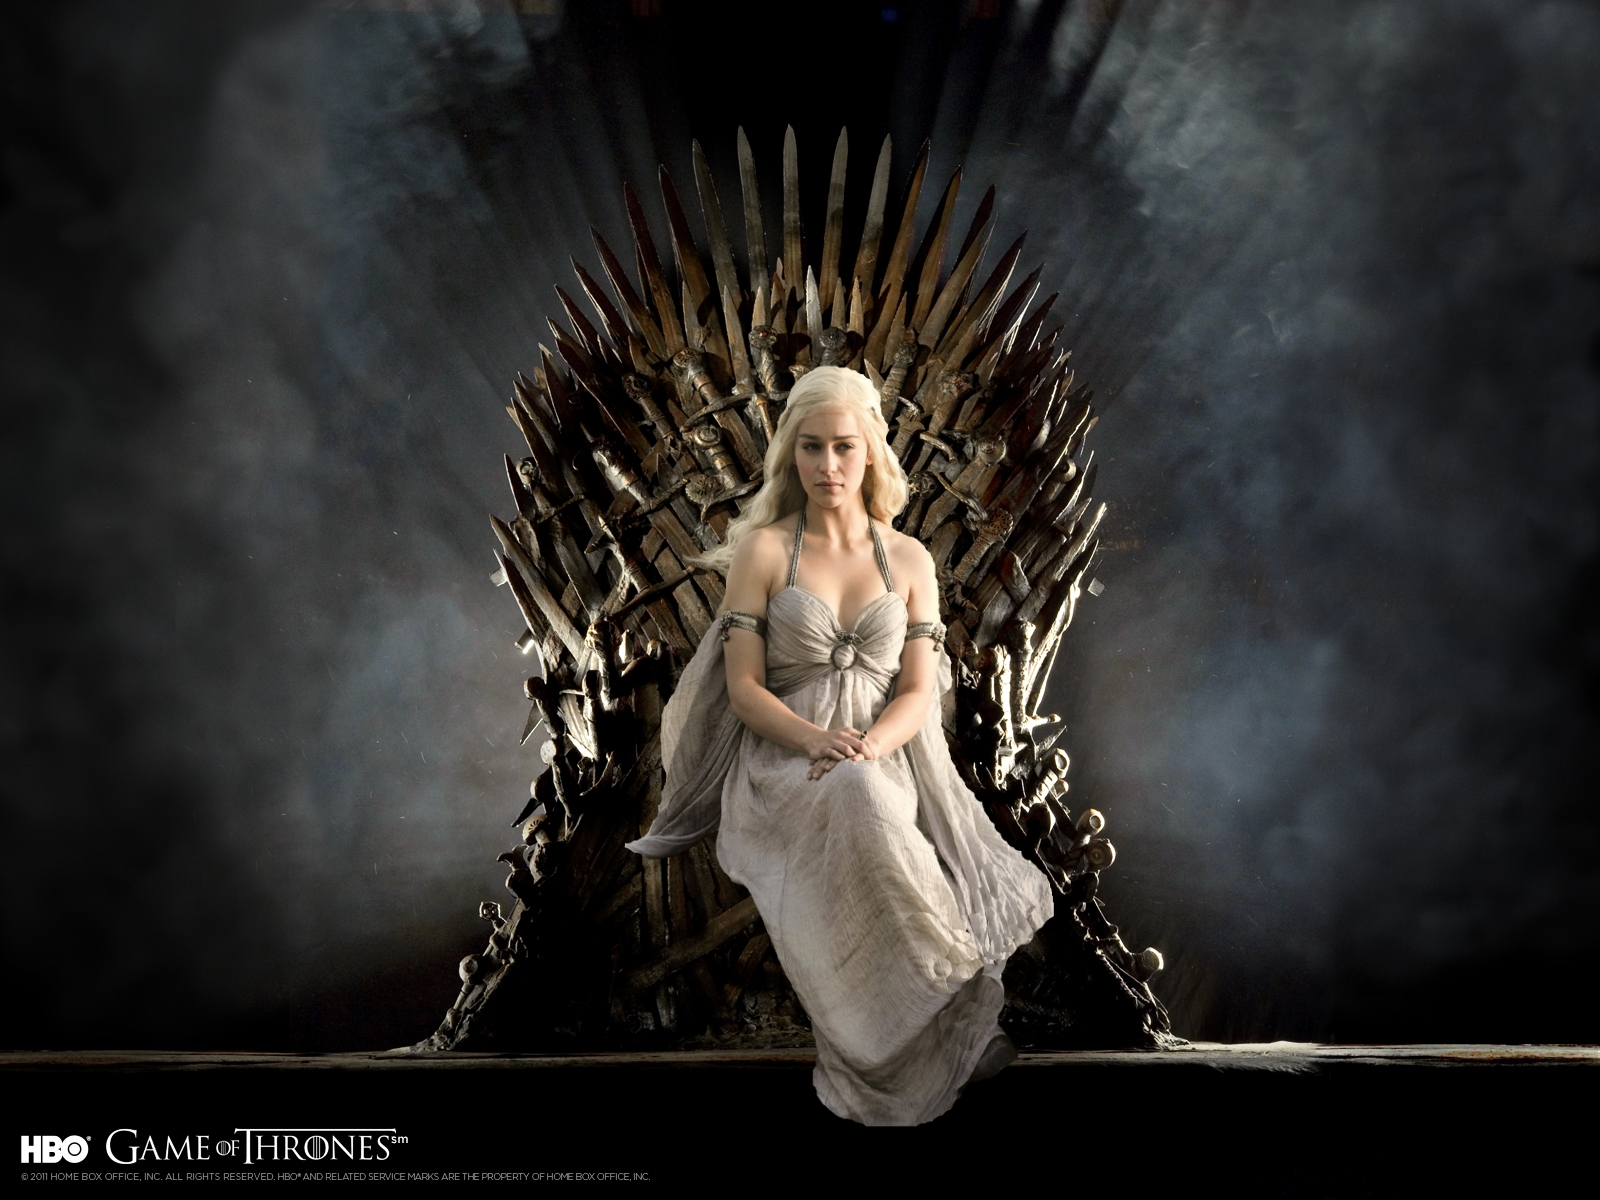 daenerys_targaryan__game_of_thrones_wallpaper_by_darkelektra-d592zg3